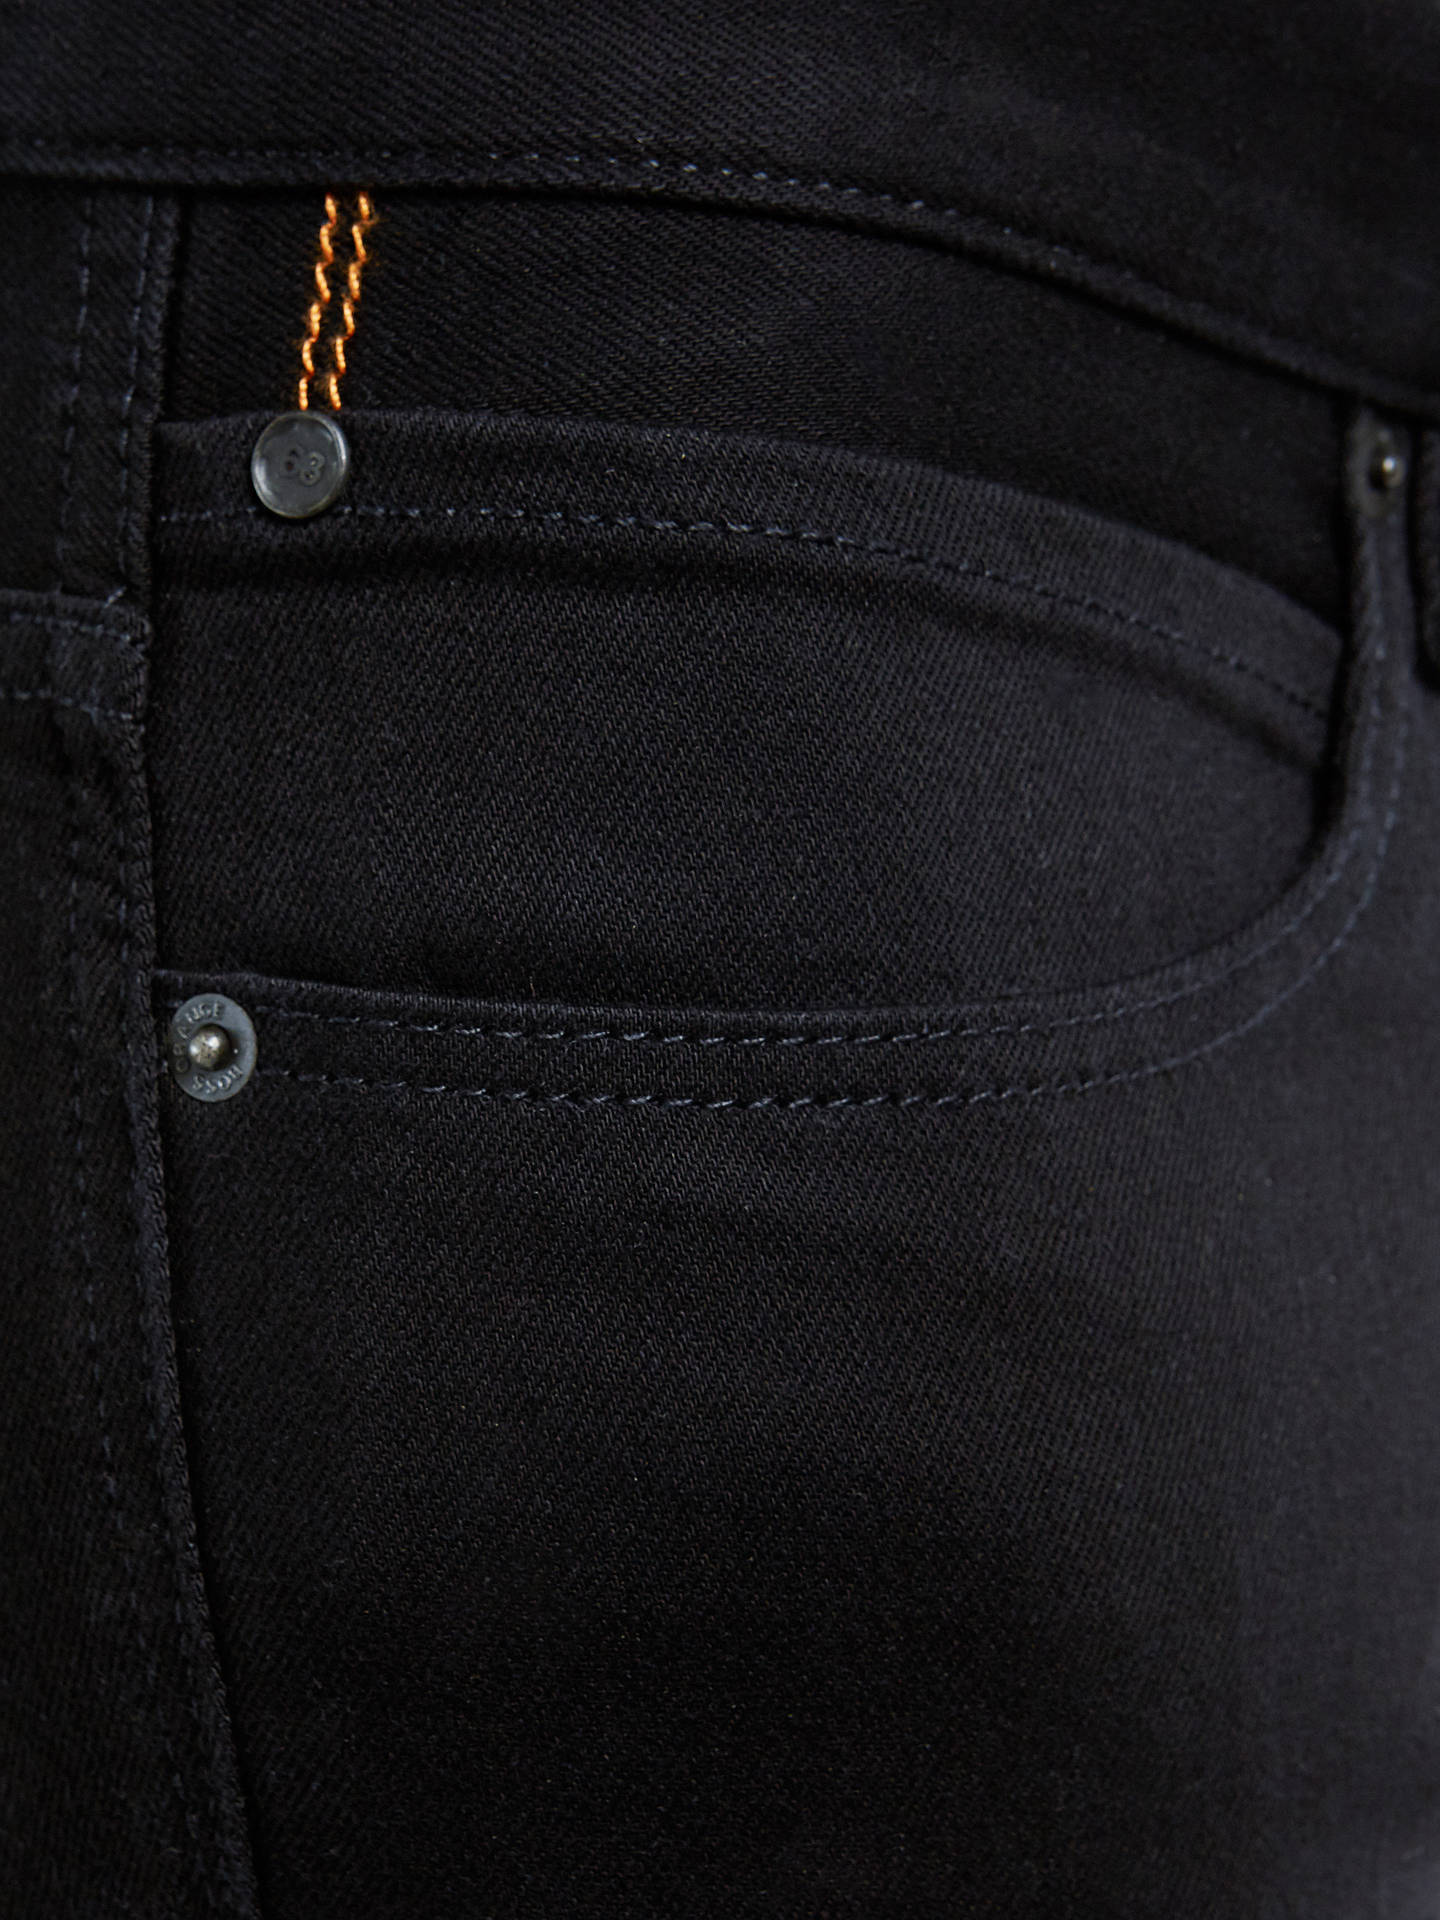 BuyBOSS Orange Slim Jeans, Black, 32S Online at johnlewis.com